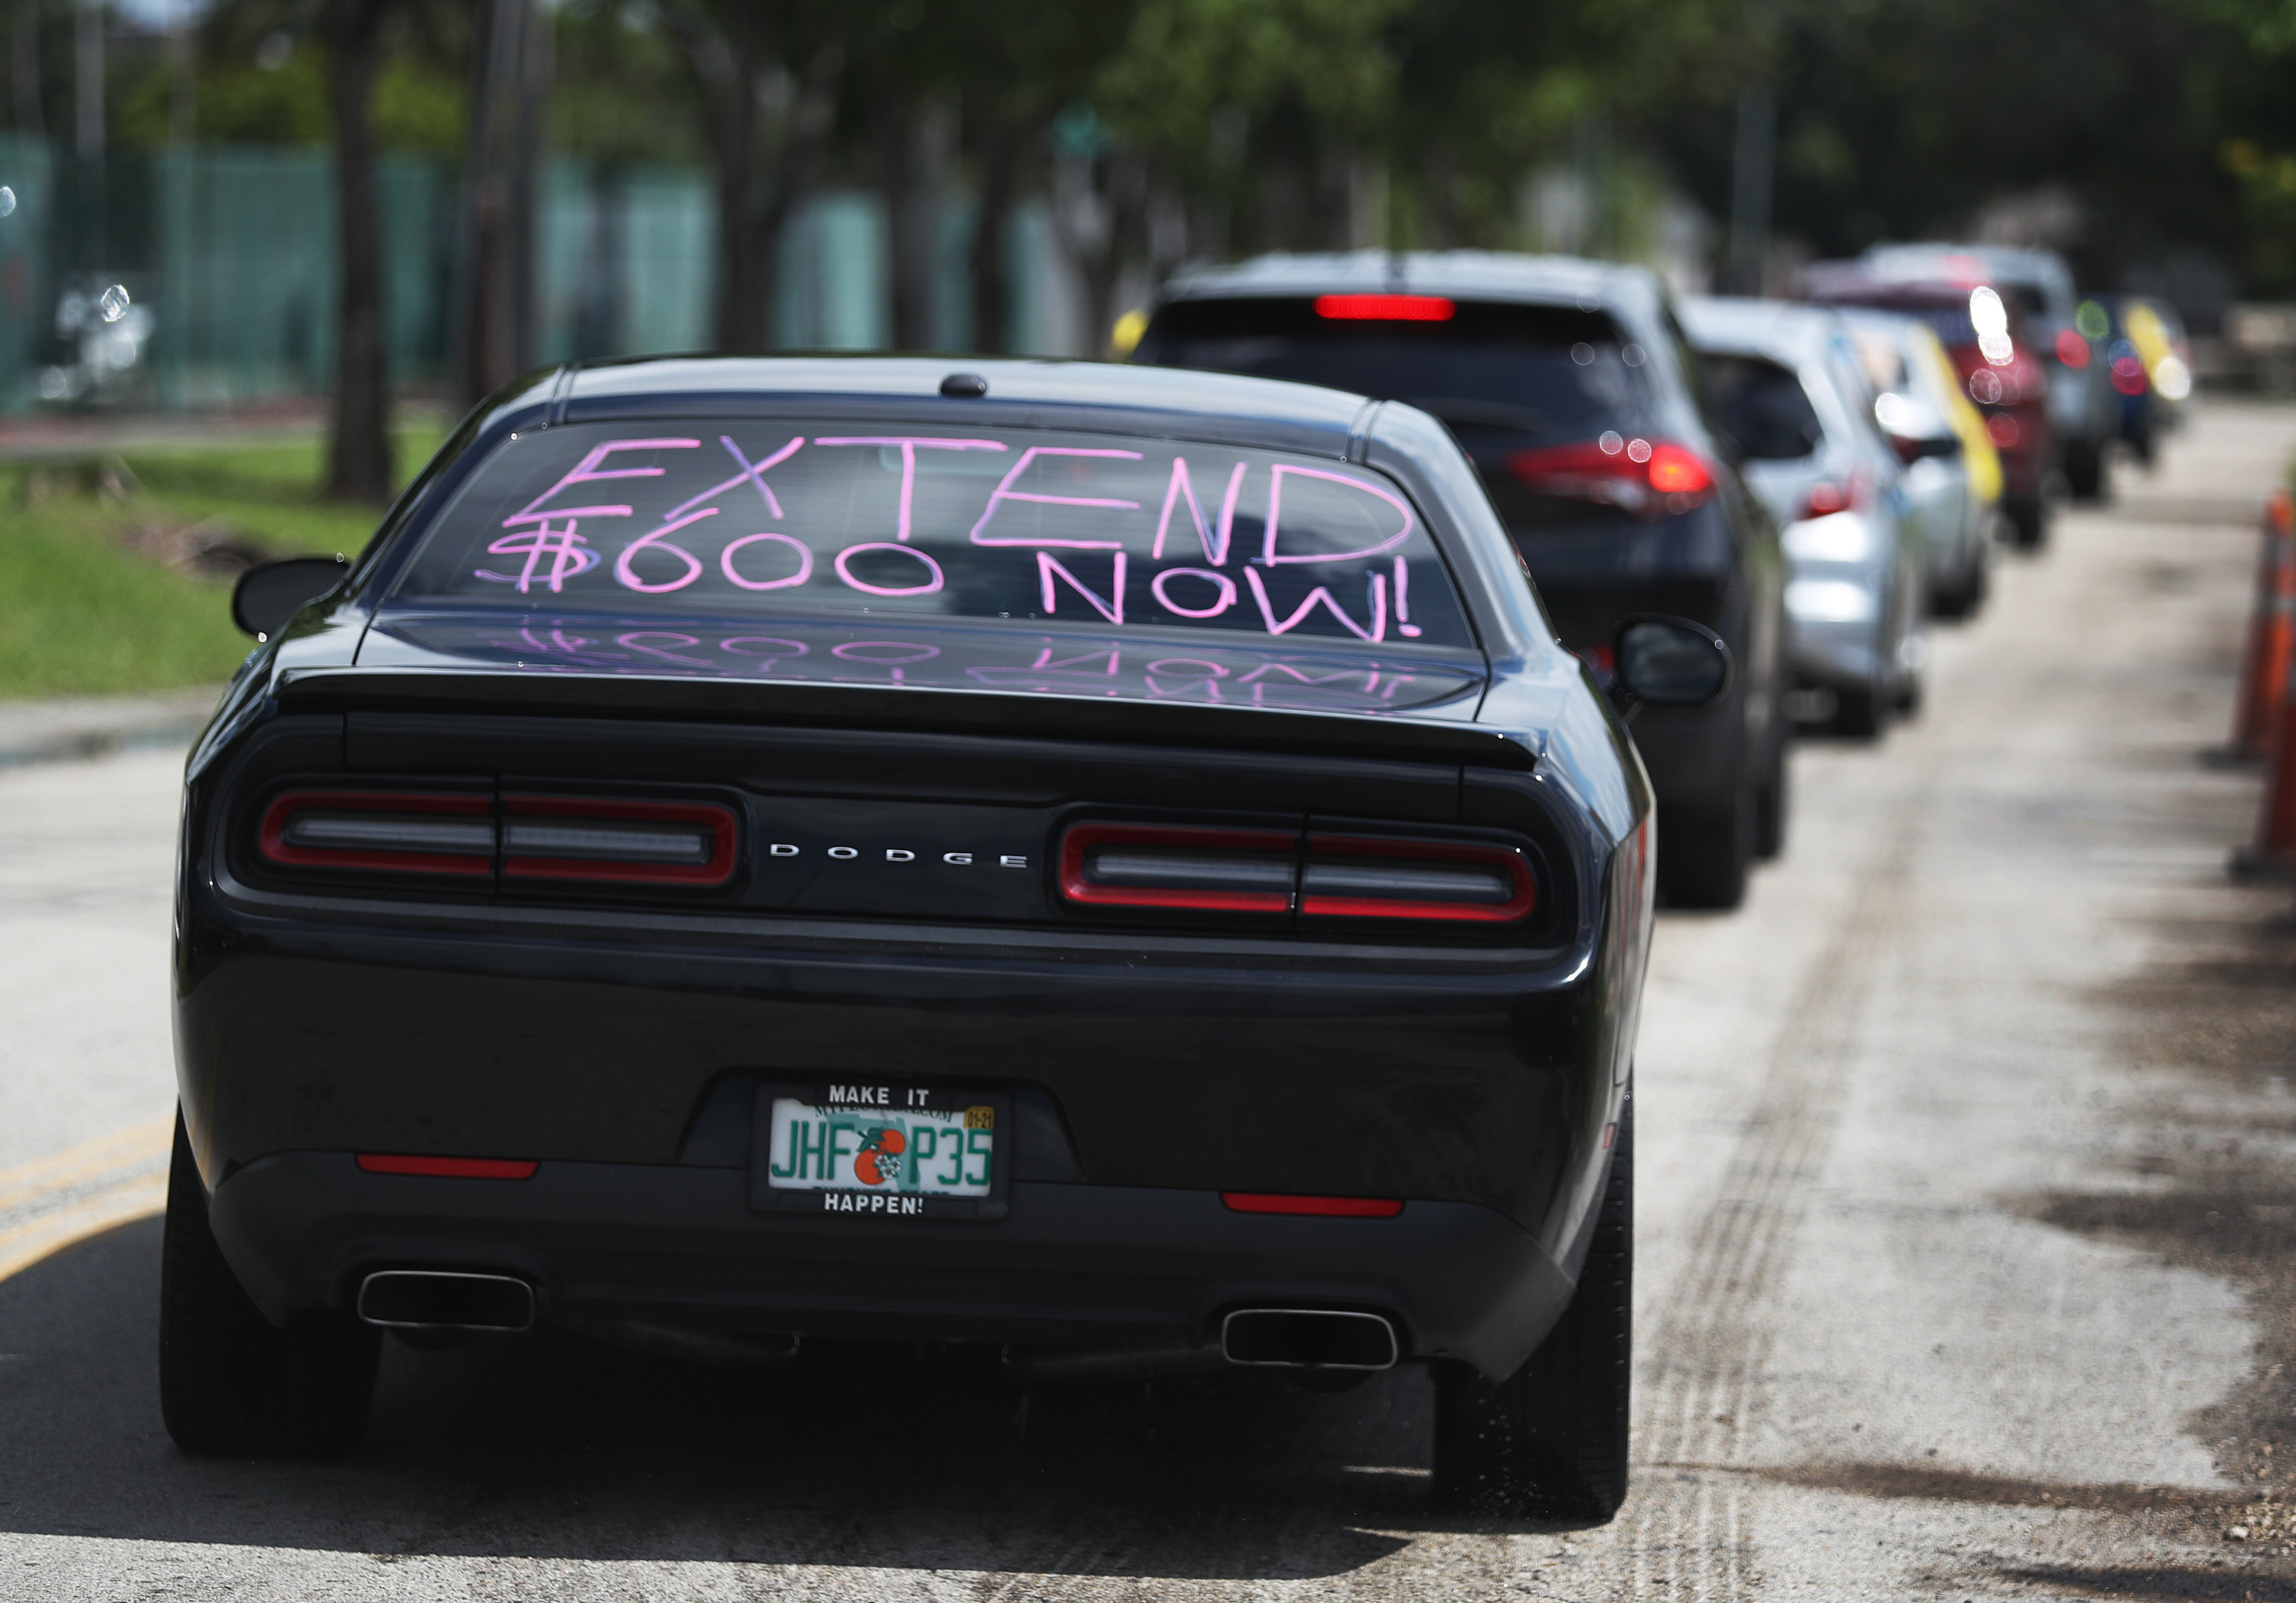 A car participates in a July 16, 2020 caravan protest headed for the Coral Gables, Florida, office of Sen. Rick Scott. Caravan participants asked Scott and other Senators to support extension of unemployment benefits for laid-off Americans.